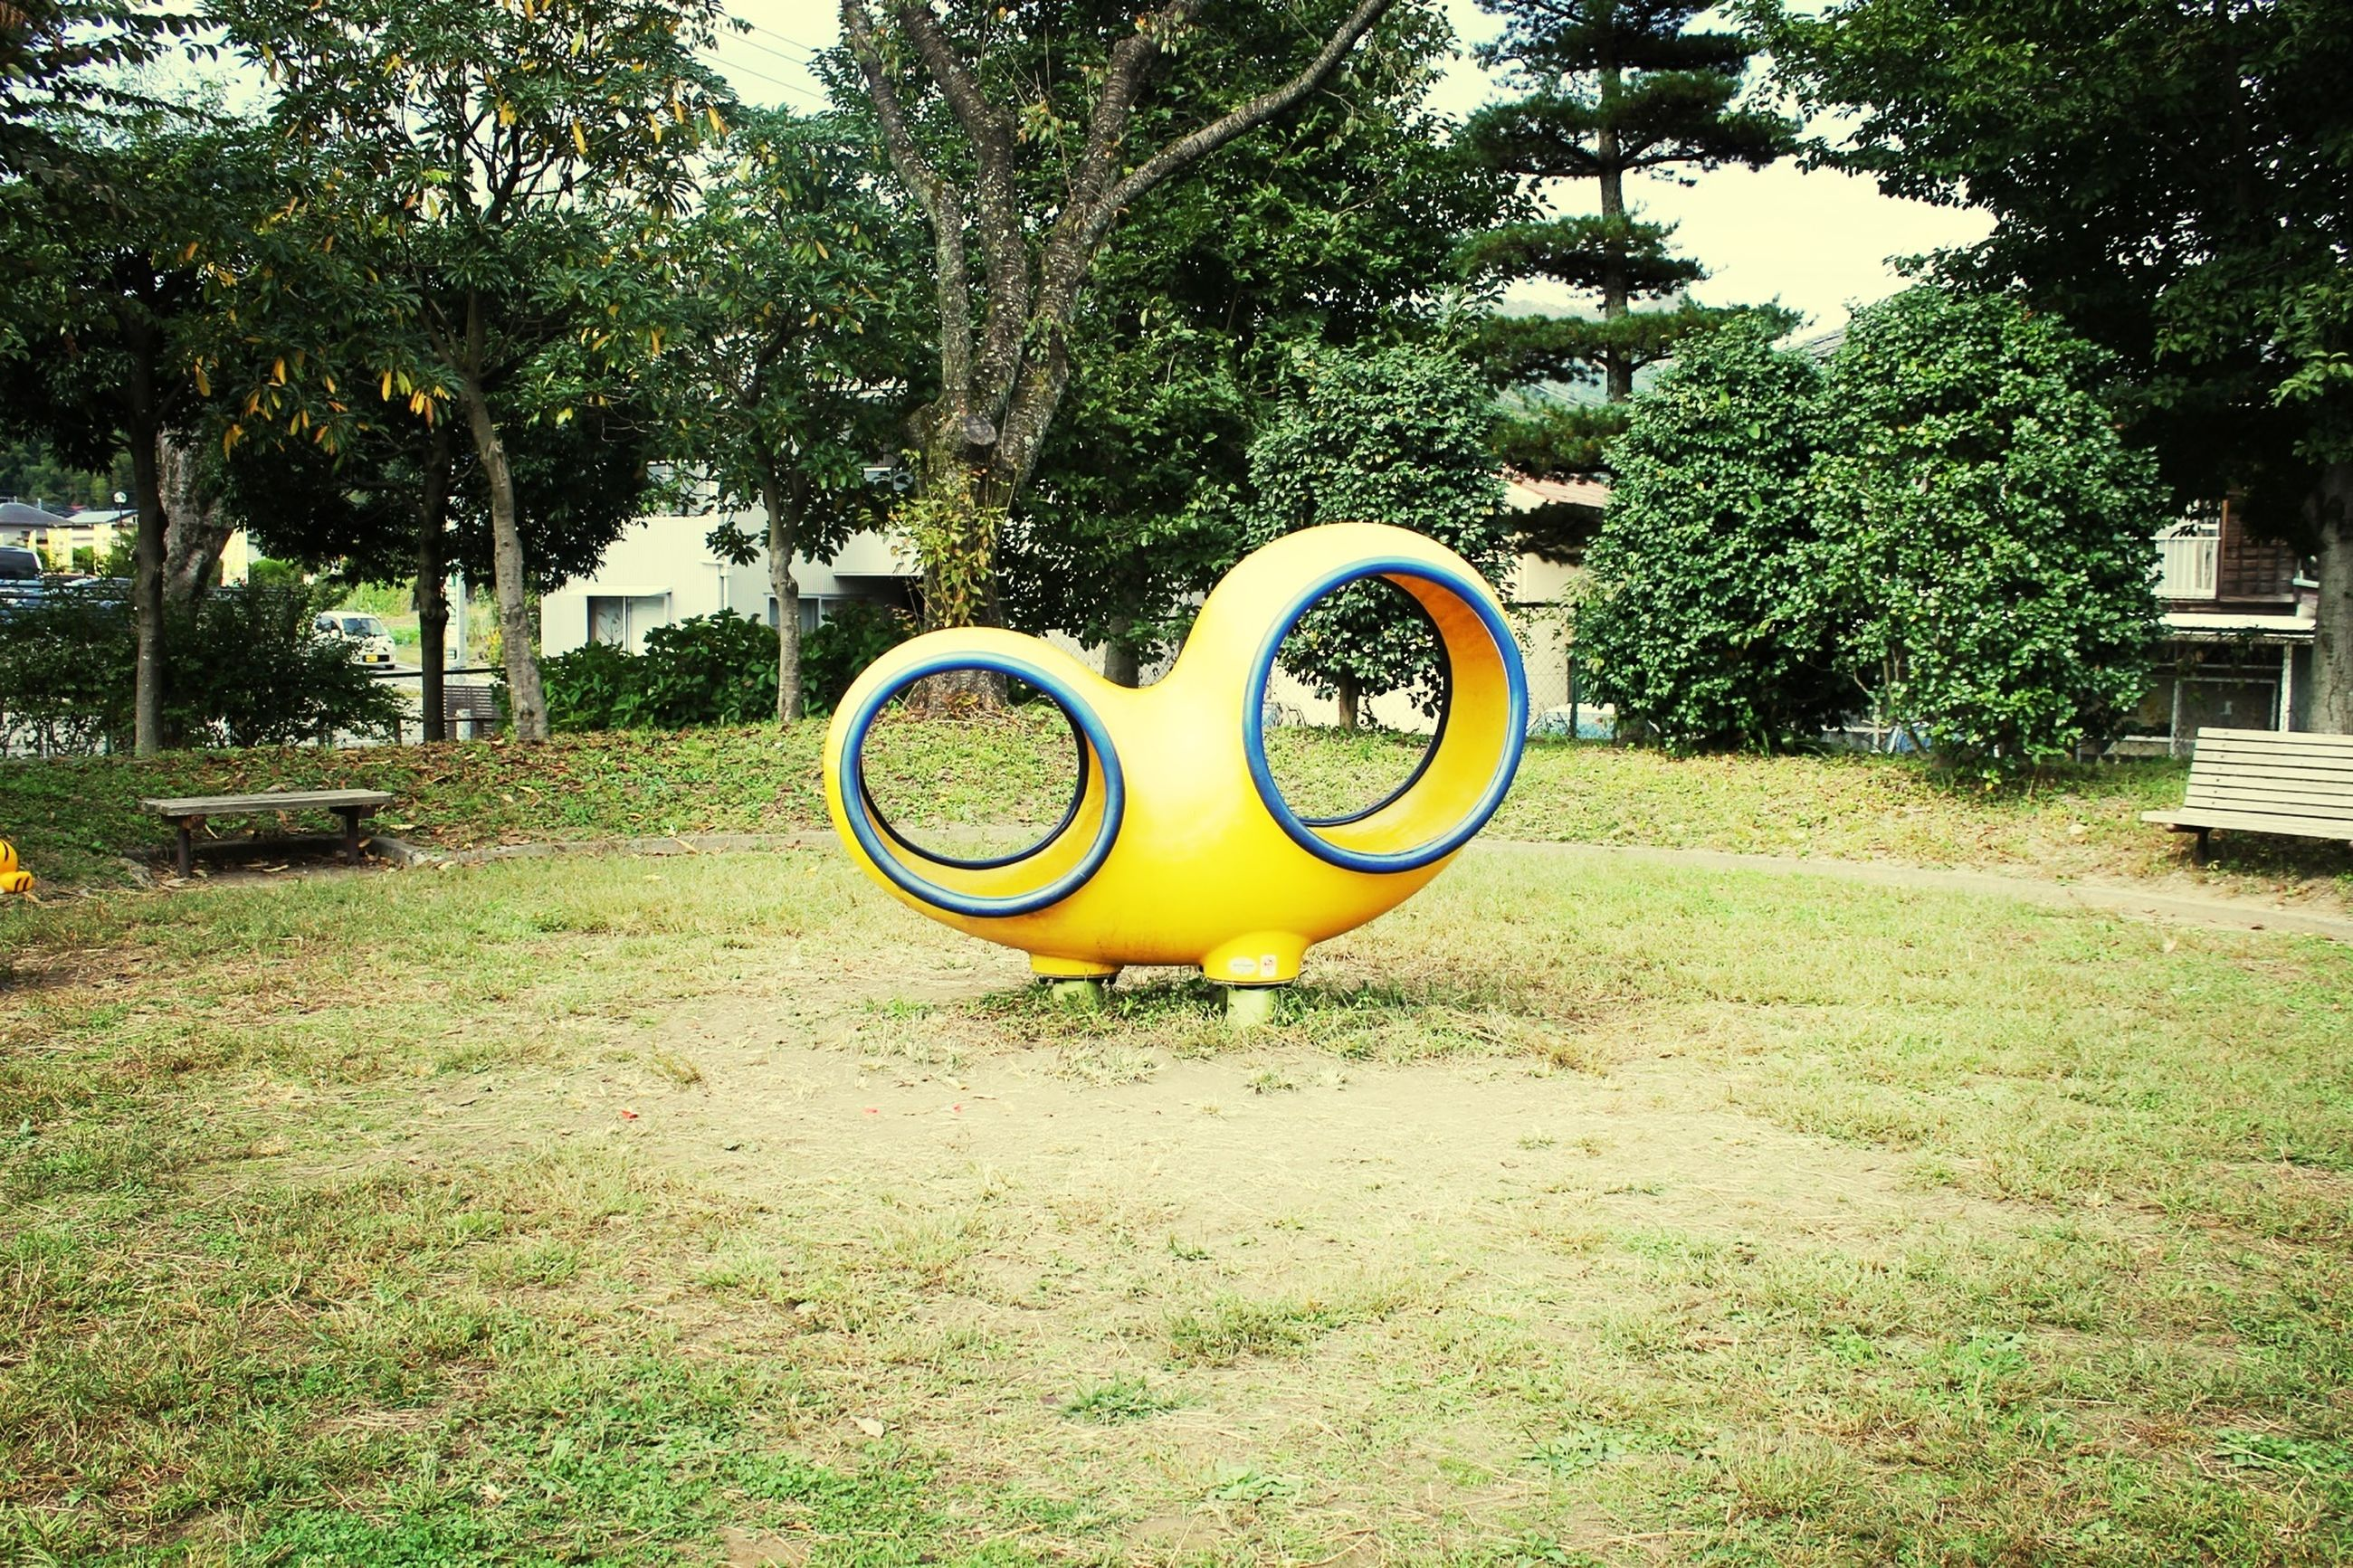 tree, grass, green color, yellow, circle, field, day, growth, outdoors, sunlight, no people, plant, park - man made space, absence, nature, lighting equipment, grassy, sport, playground, green